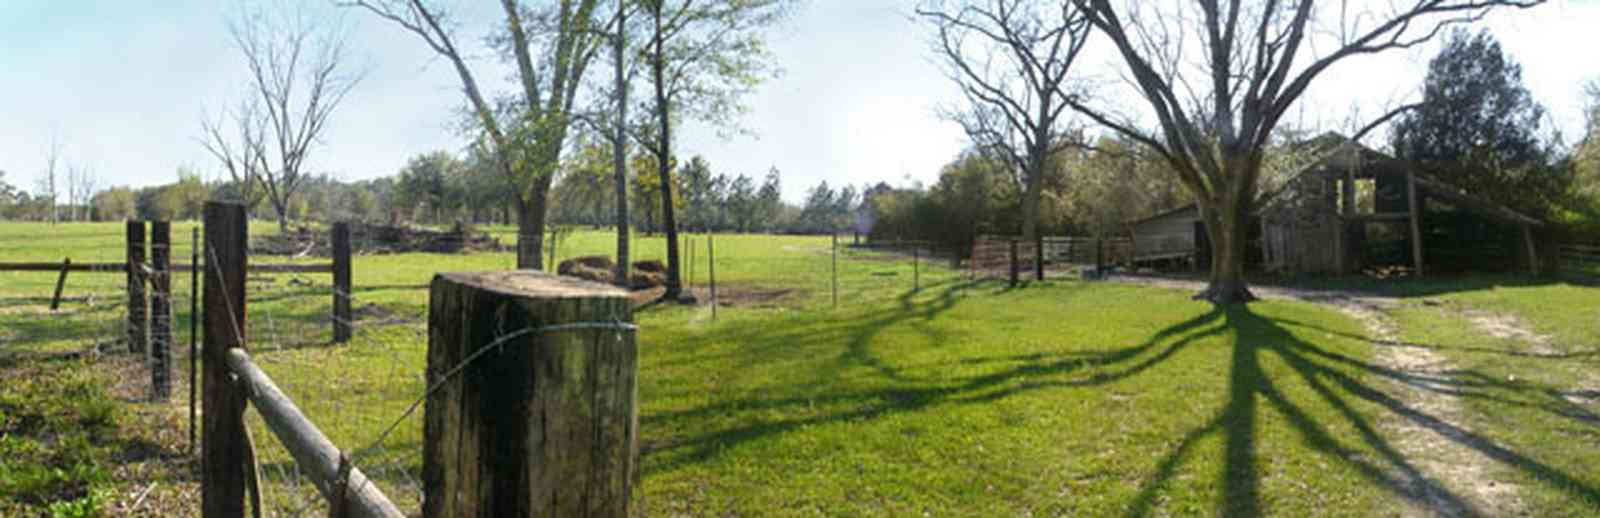 Milton:-Green-Goat-Farm_01b.jpg:  fence, pecan tree, goat, barn, post